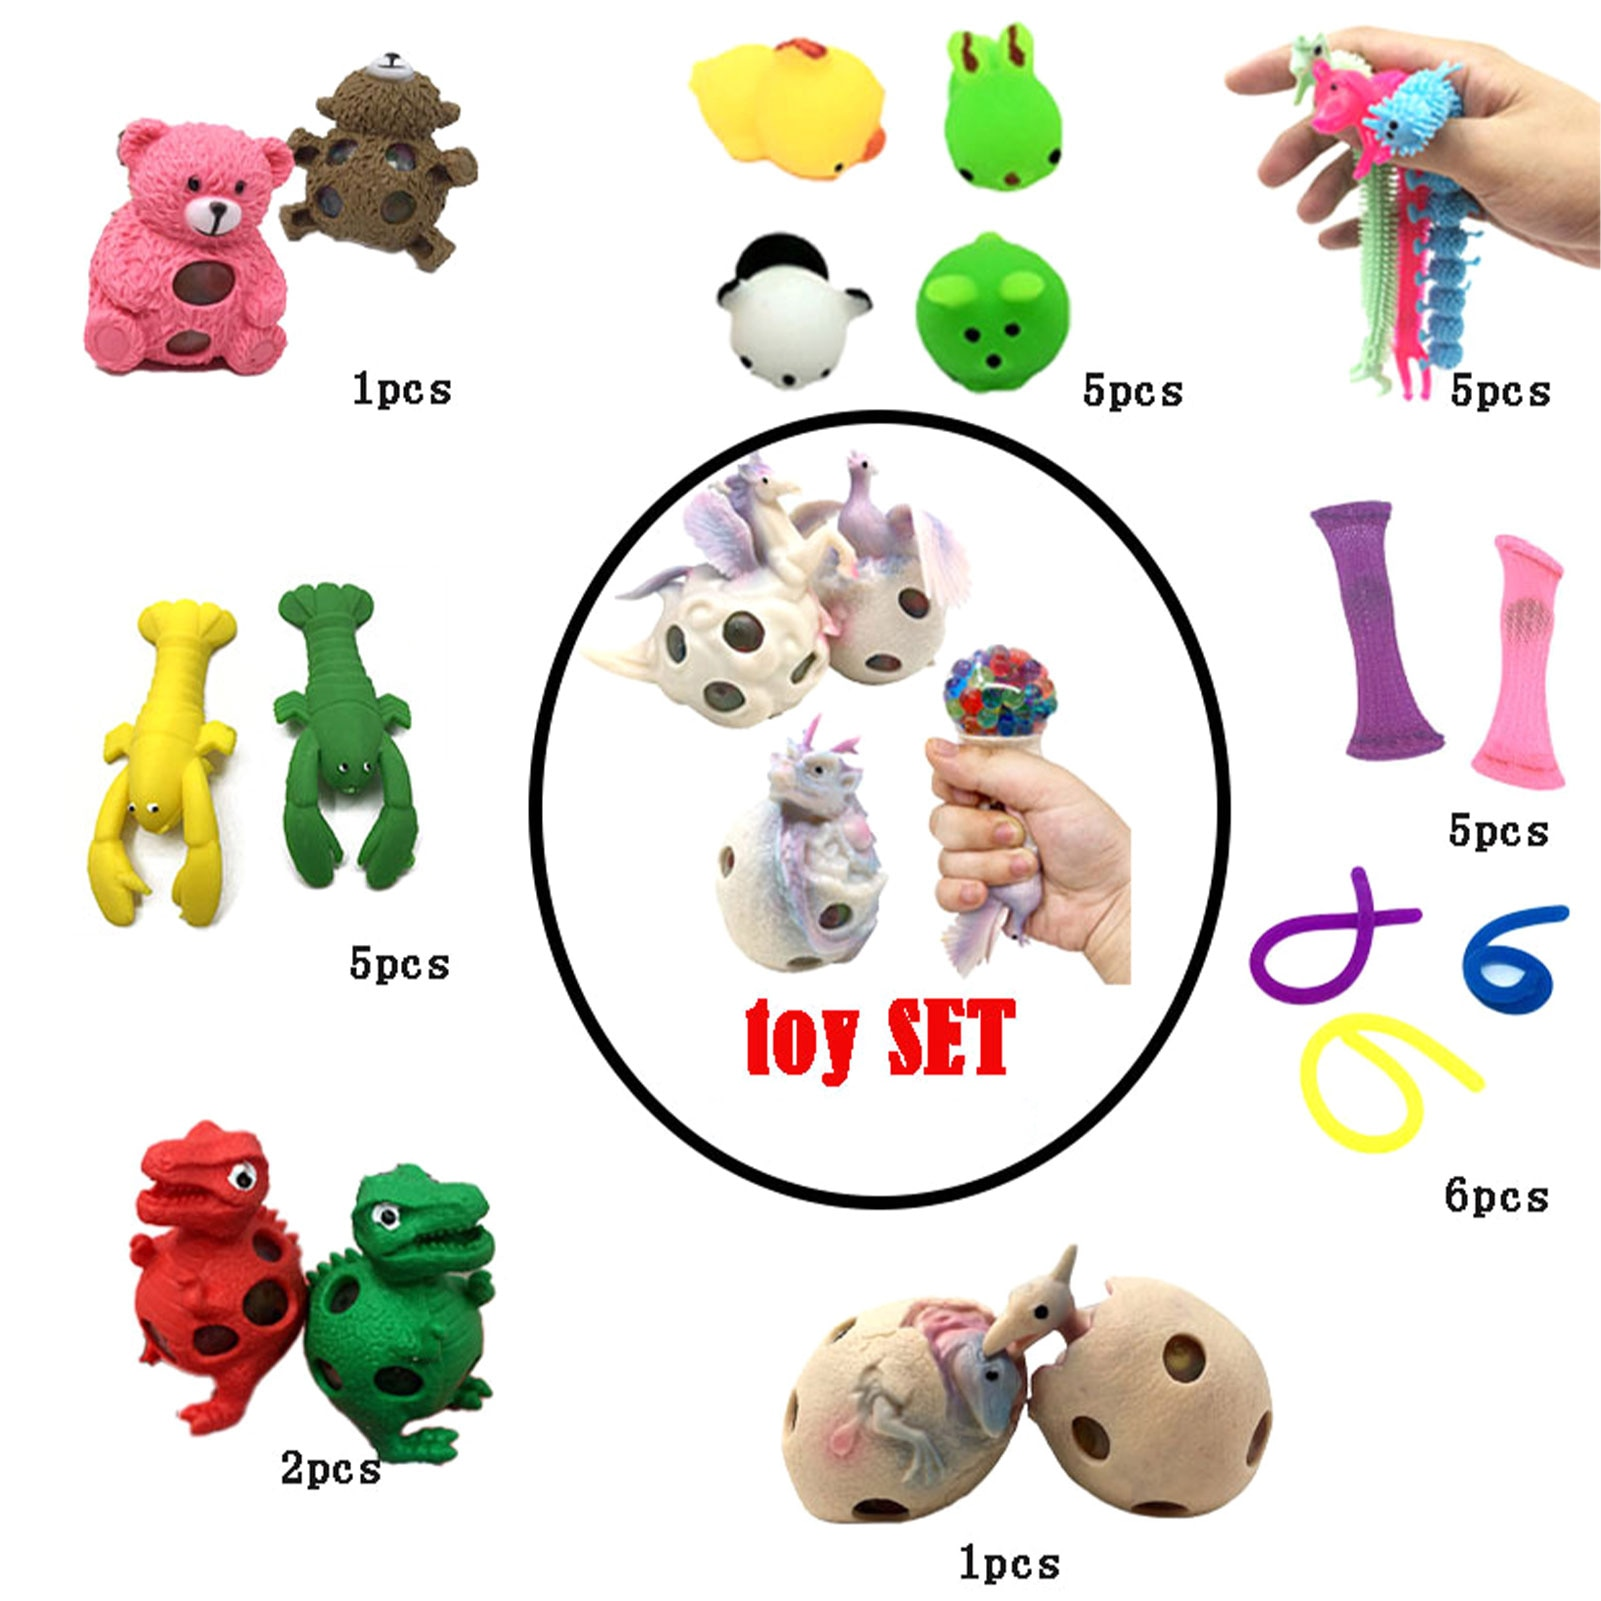 Sensory Toy Set Toys To Relieve The Stress And Anxiety Of Children And Adults People With Add Or ADHD And OCD Or Anxiety Levels